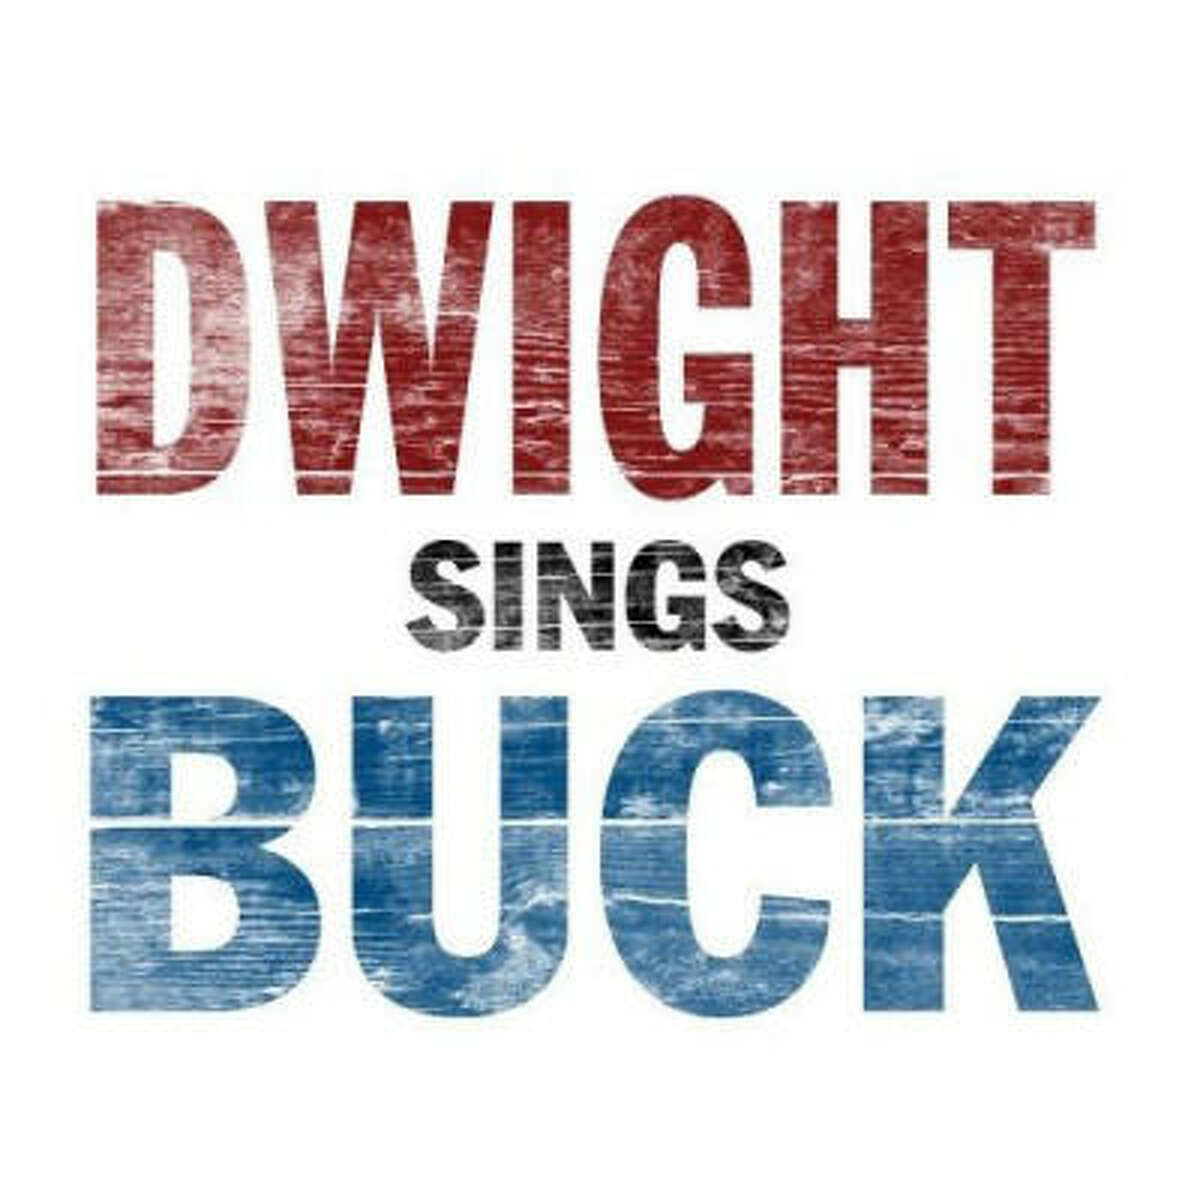 Dwight Sings Buck (2007), Dwight Yoakam: Yoakam owes just about everything (save the skintight trousers) to Bakersfield King Buck Owens. His choices on the set were predictable, but then the influence is obvious.